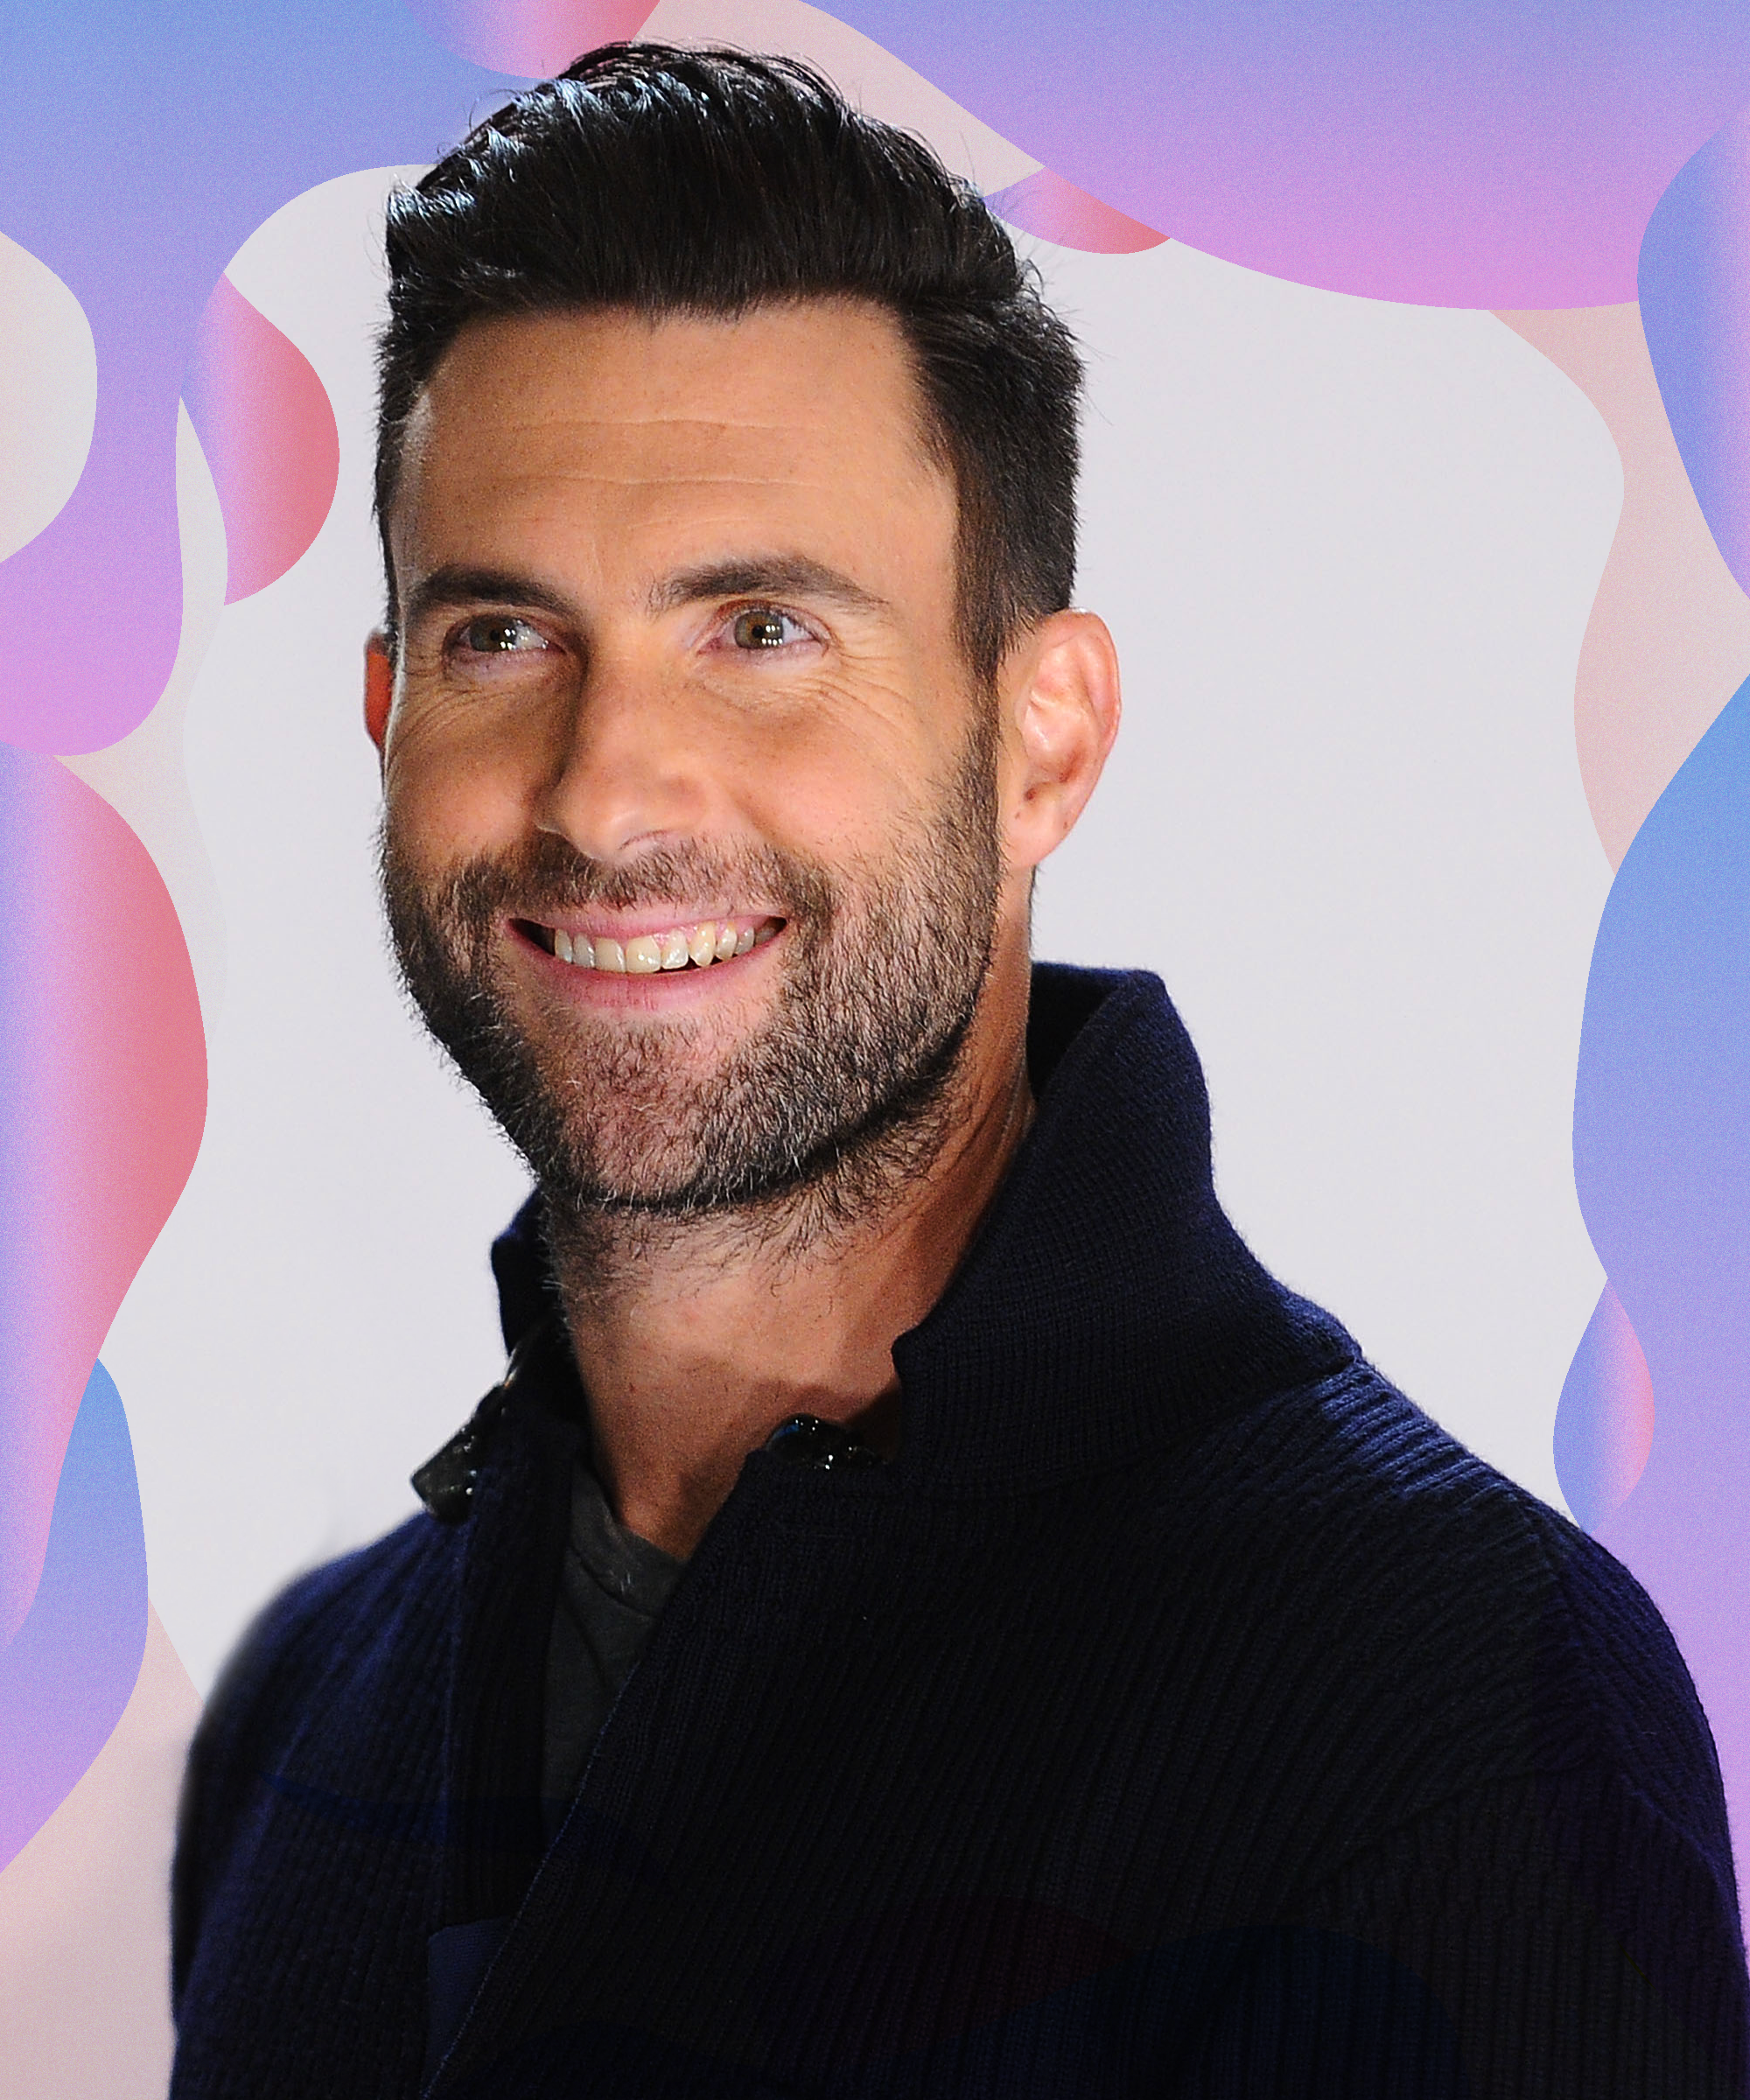 Adam Levine Just Showed Off His Latest Tattoo In A Very NSFW Way